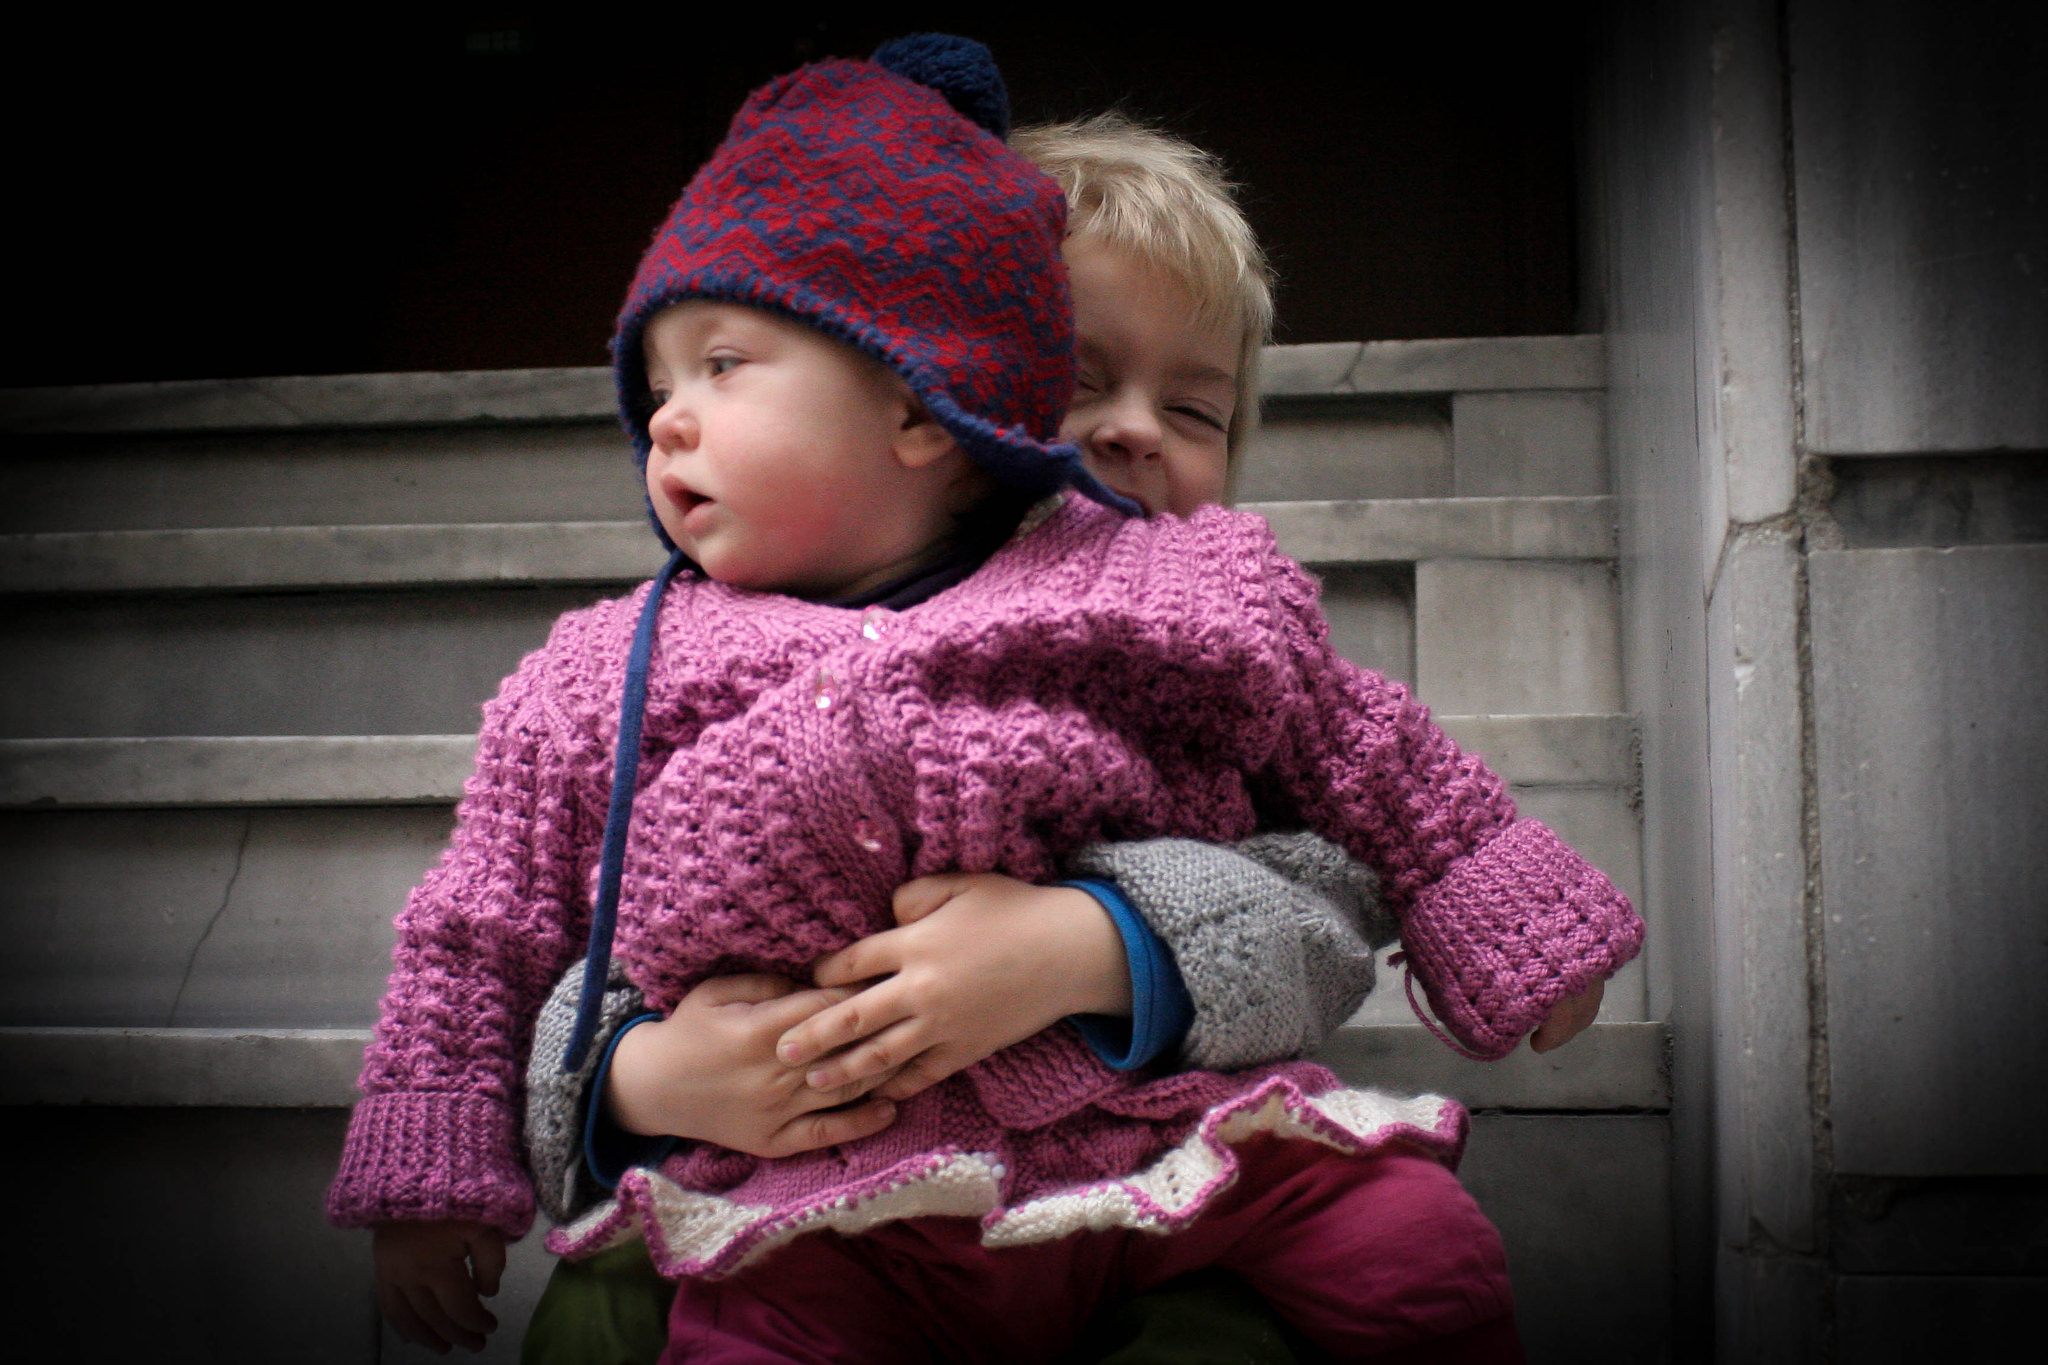 Anton and Neve in new knitwear.